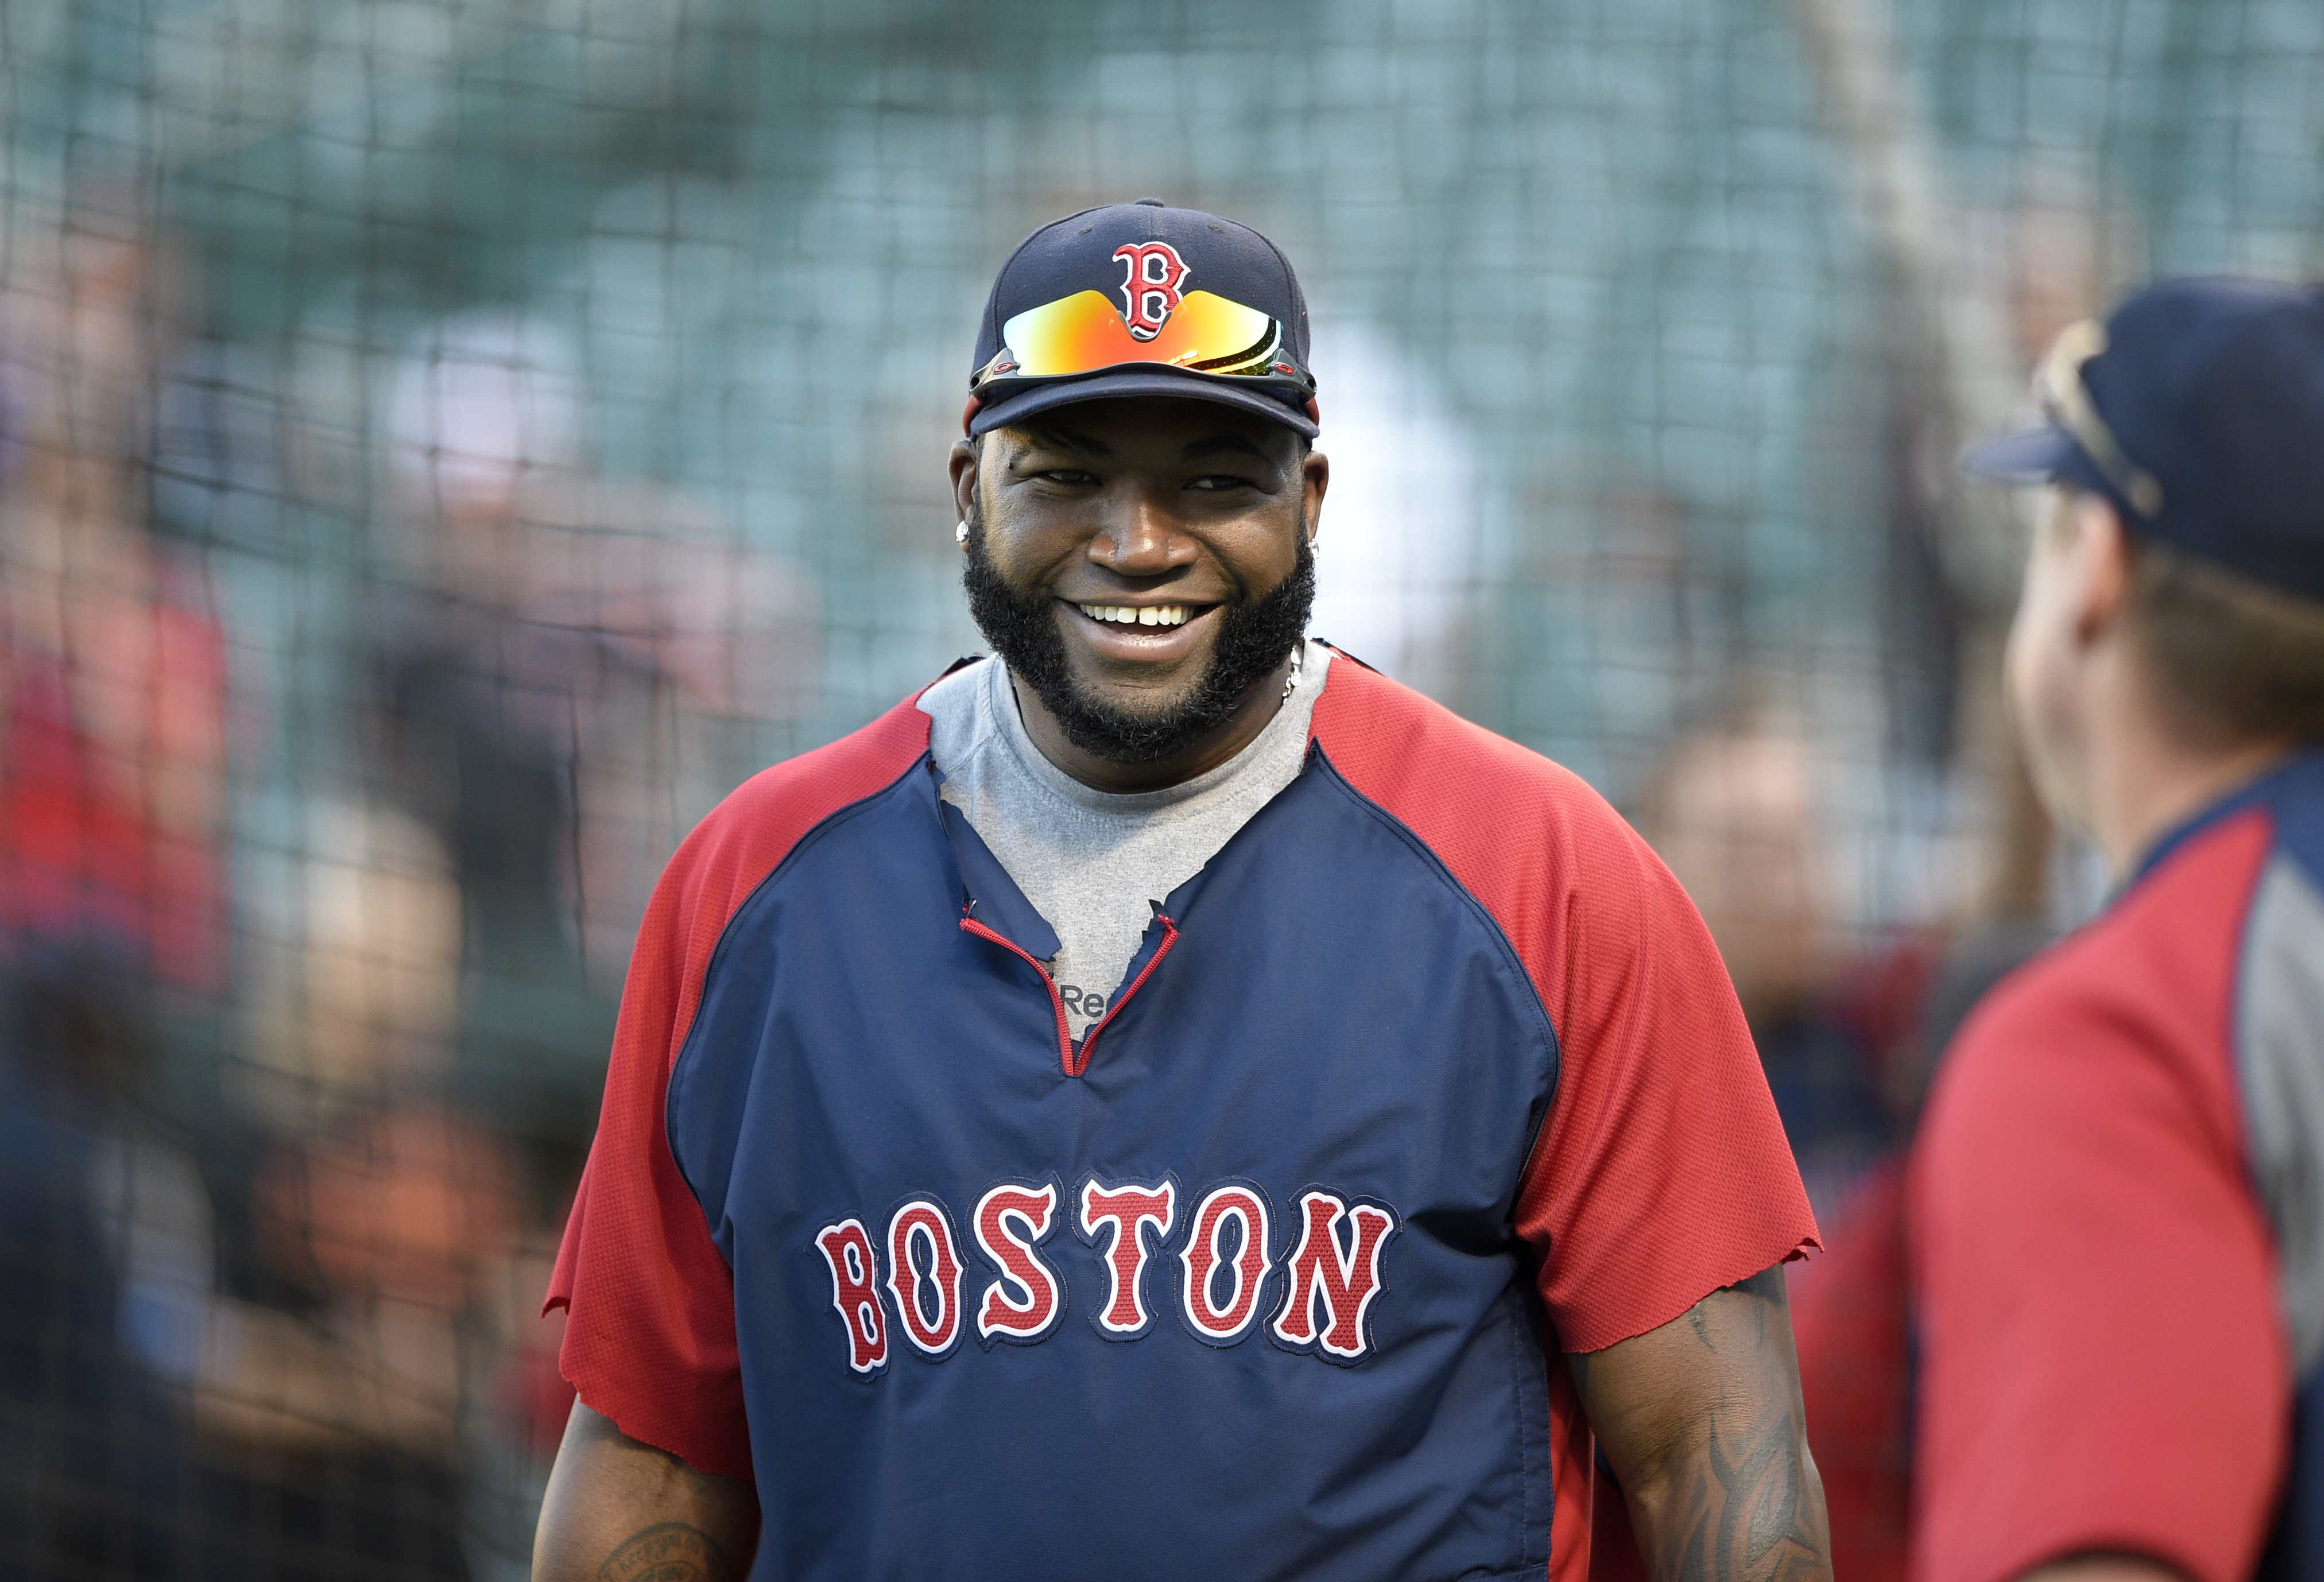 David Ortiz delivers first pitch for tonight's Red Sox-Yankees game